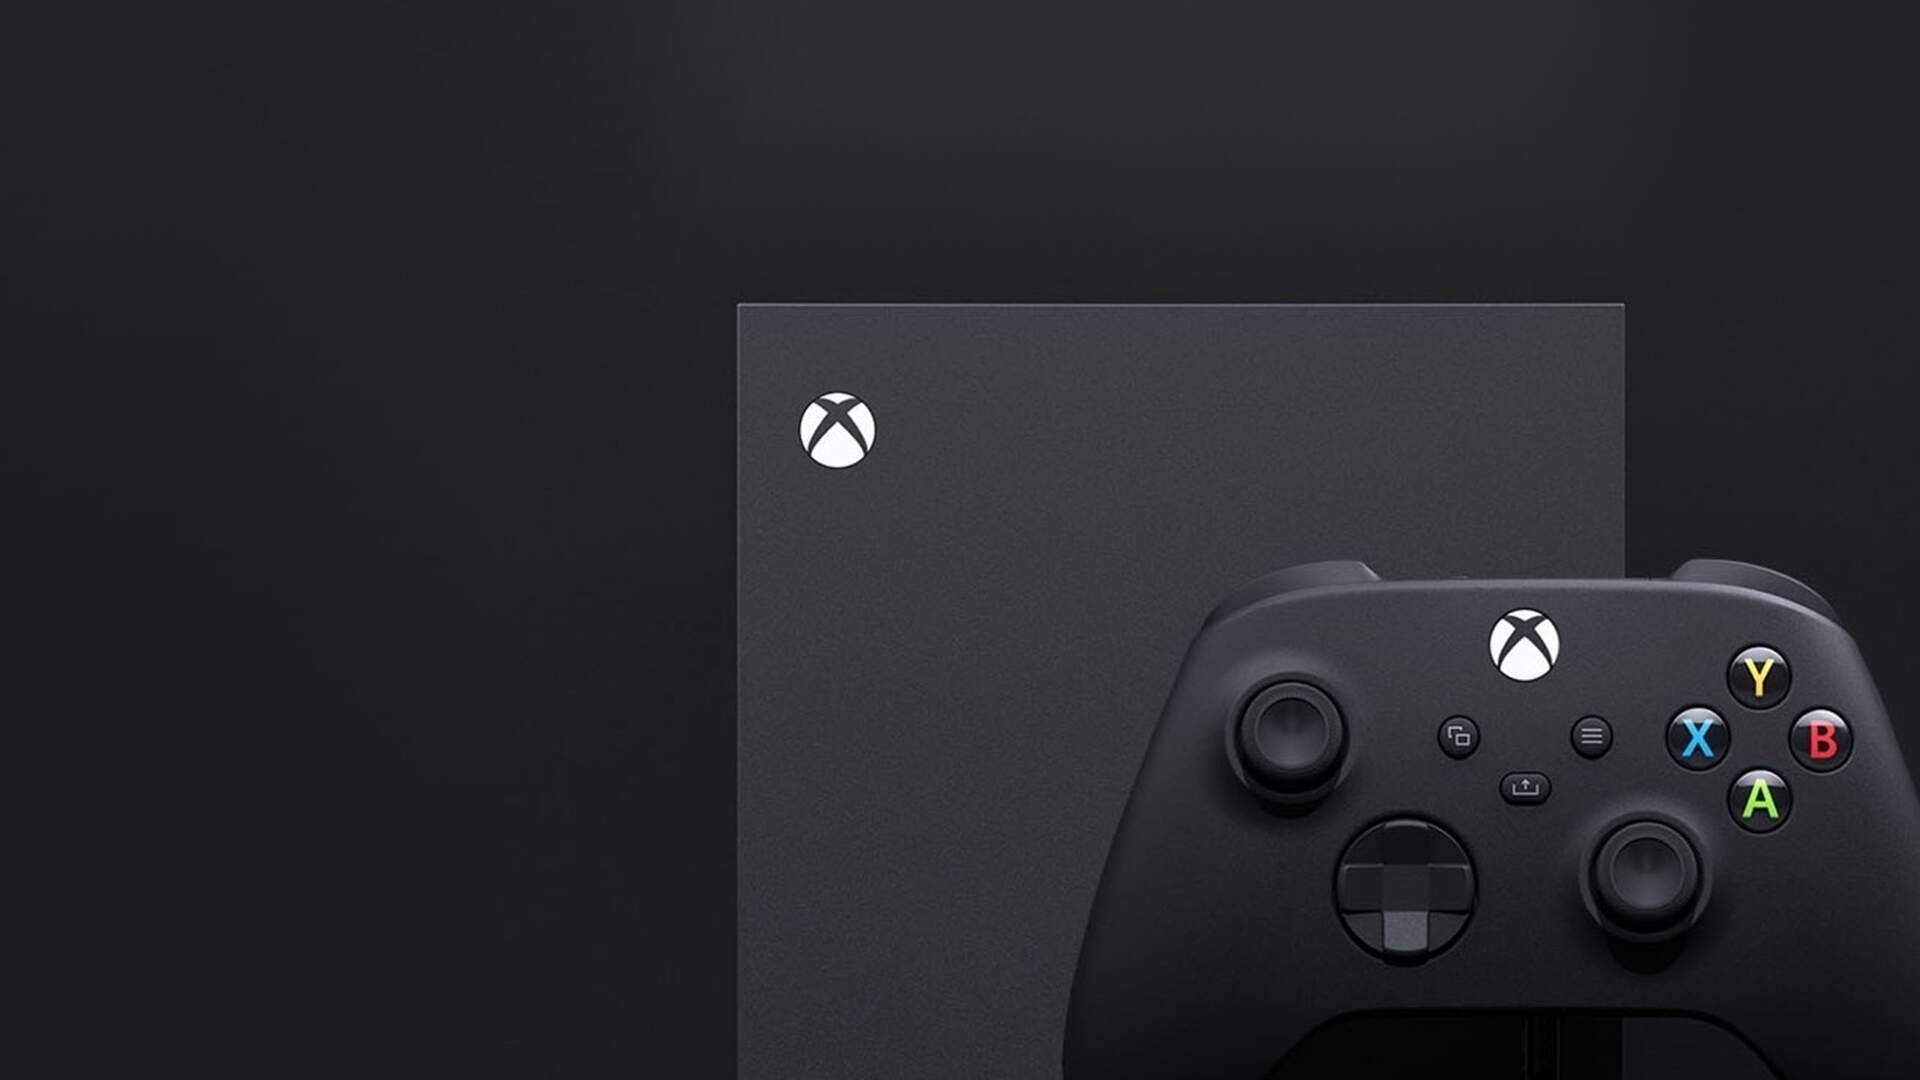 Next Xbox Series X Reveal Could Expand More on Backward Compatibility